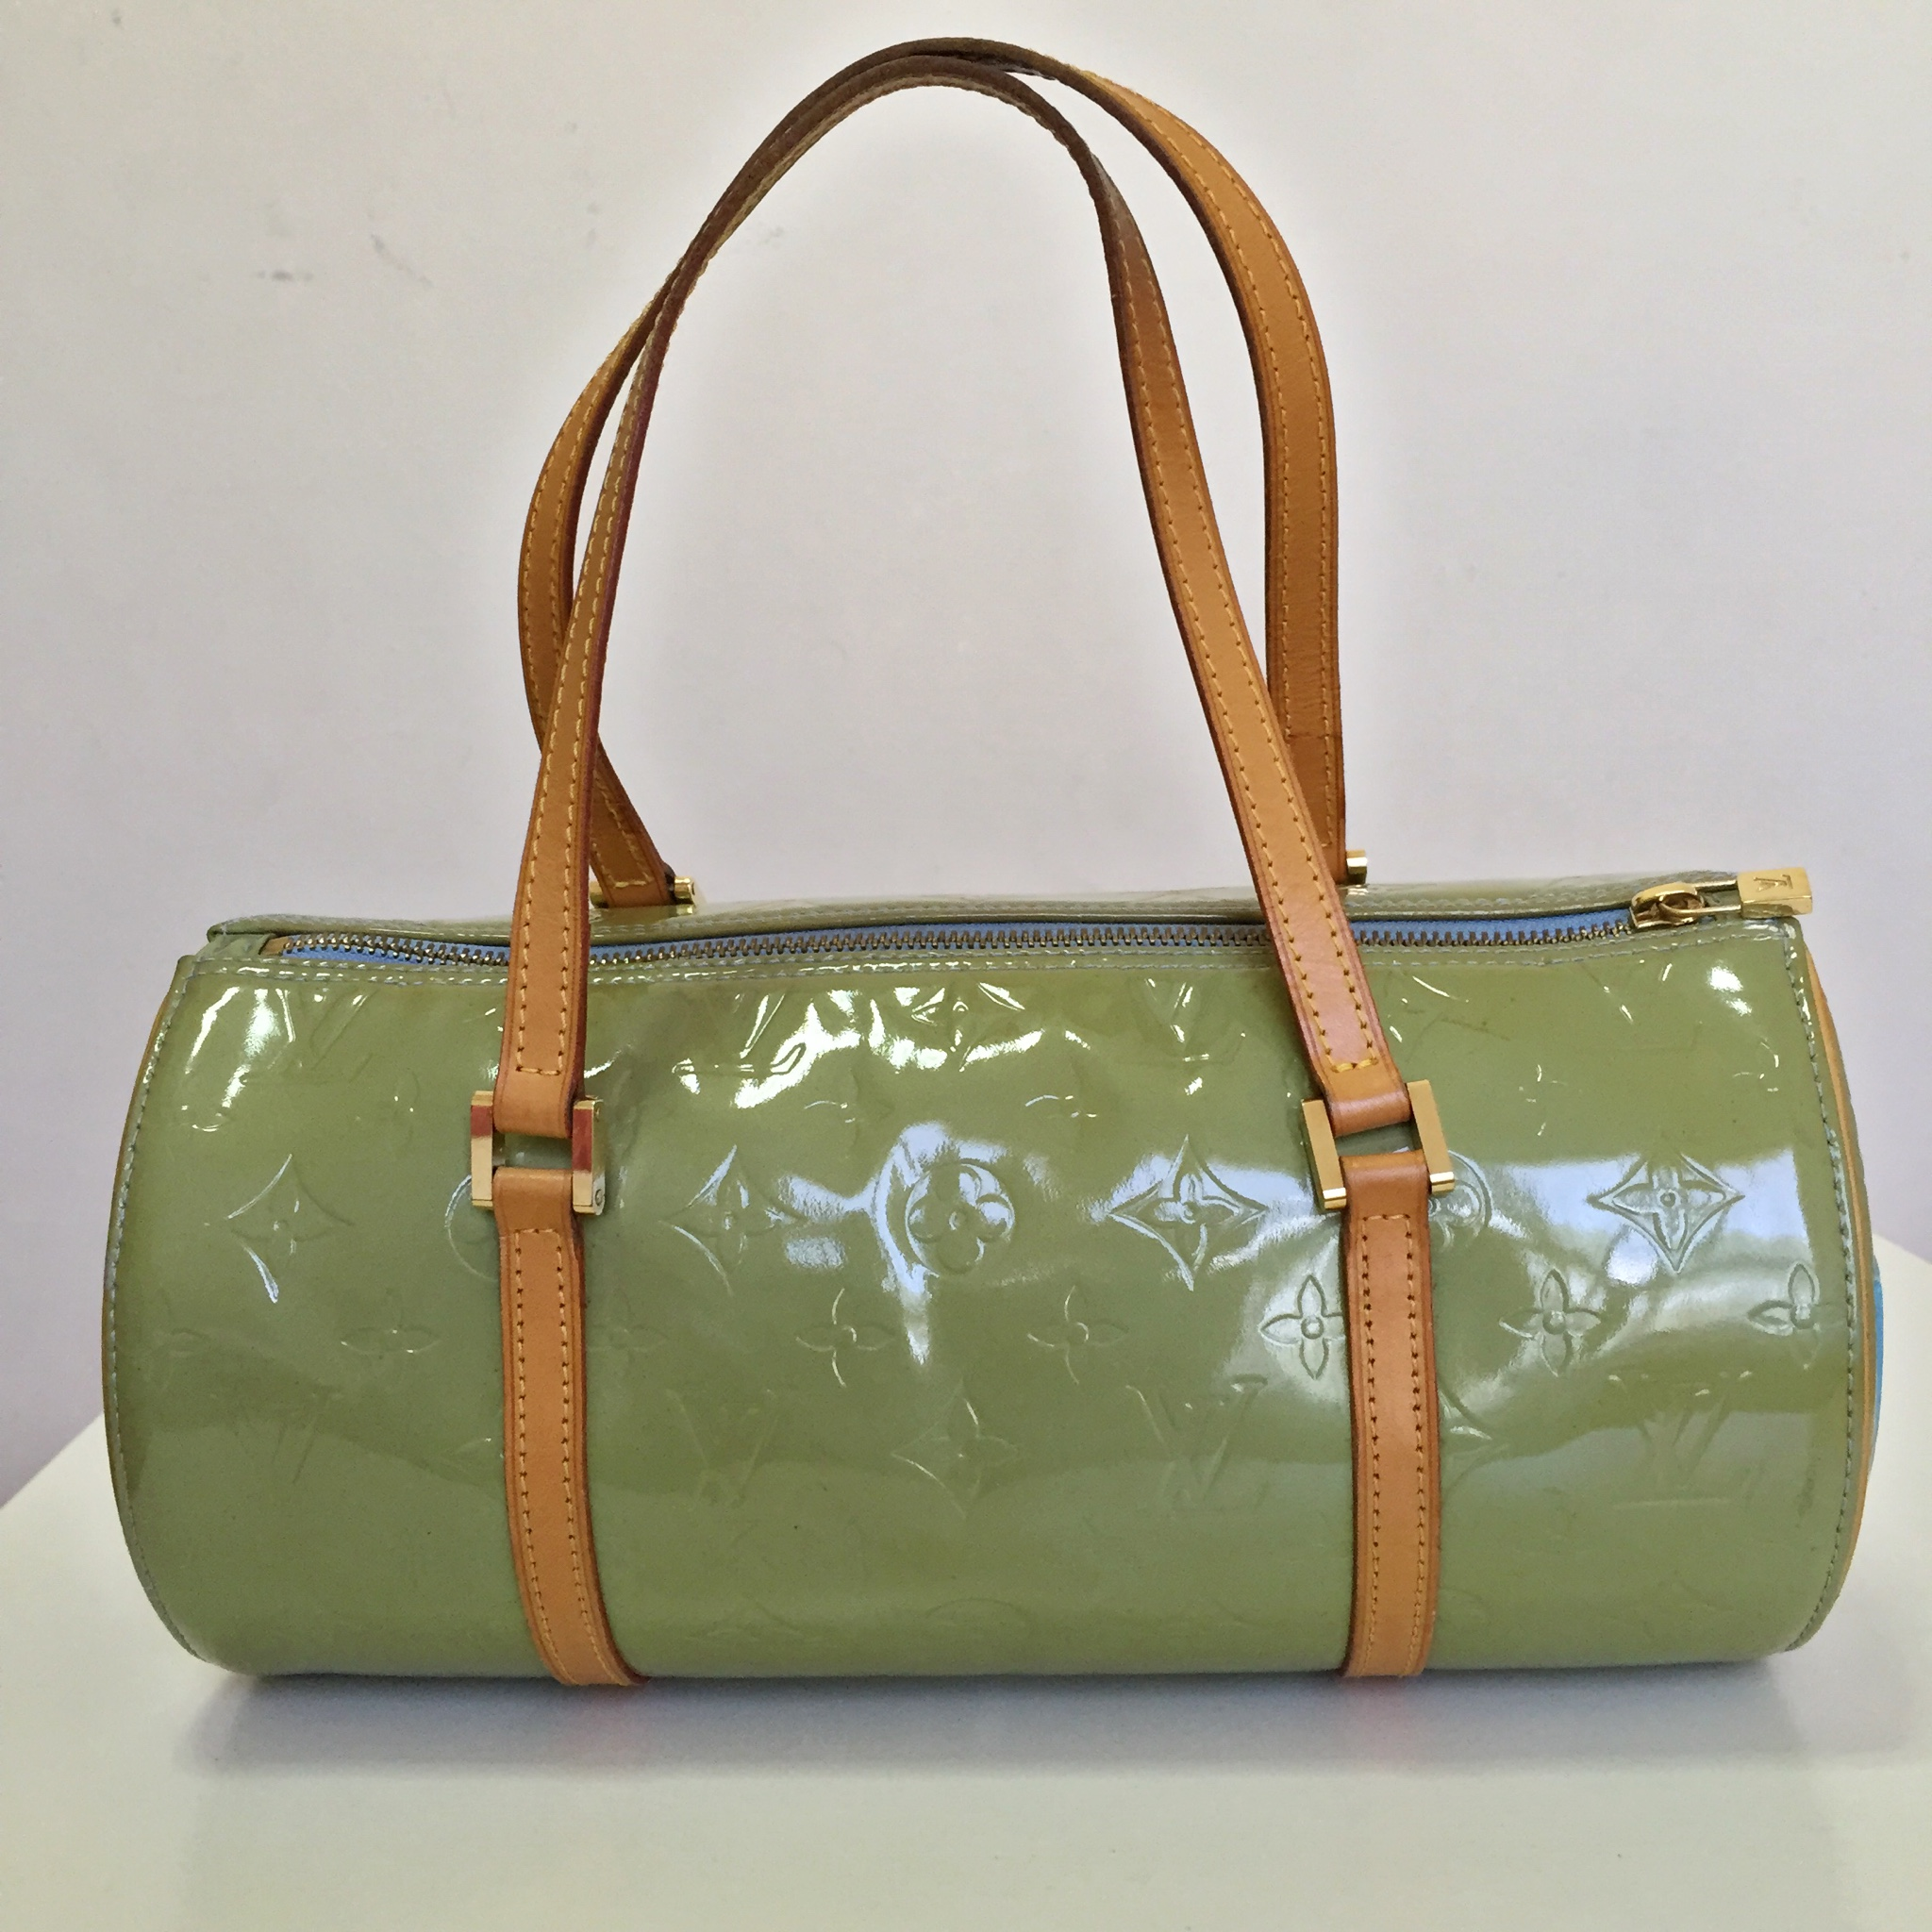 9b7079cfe38be LOUIS VUITTON Vernis Bedford Peppermint Bag on Storenvy